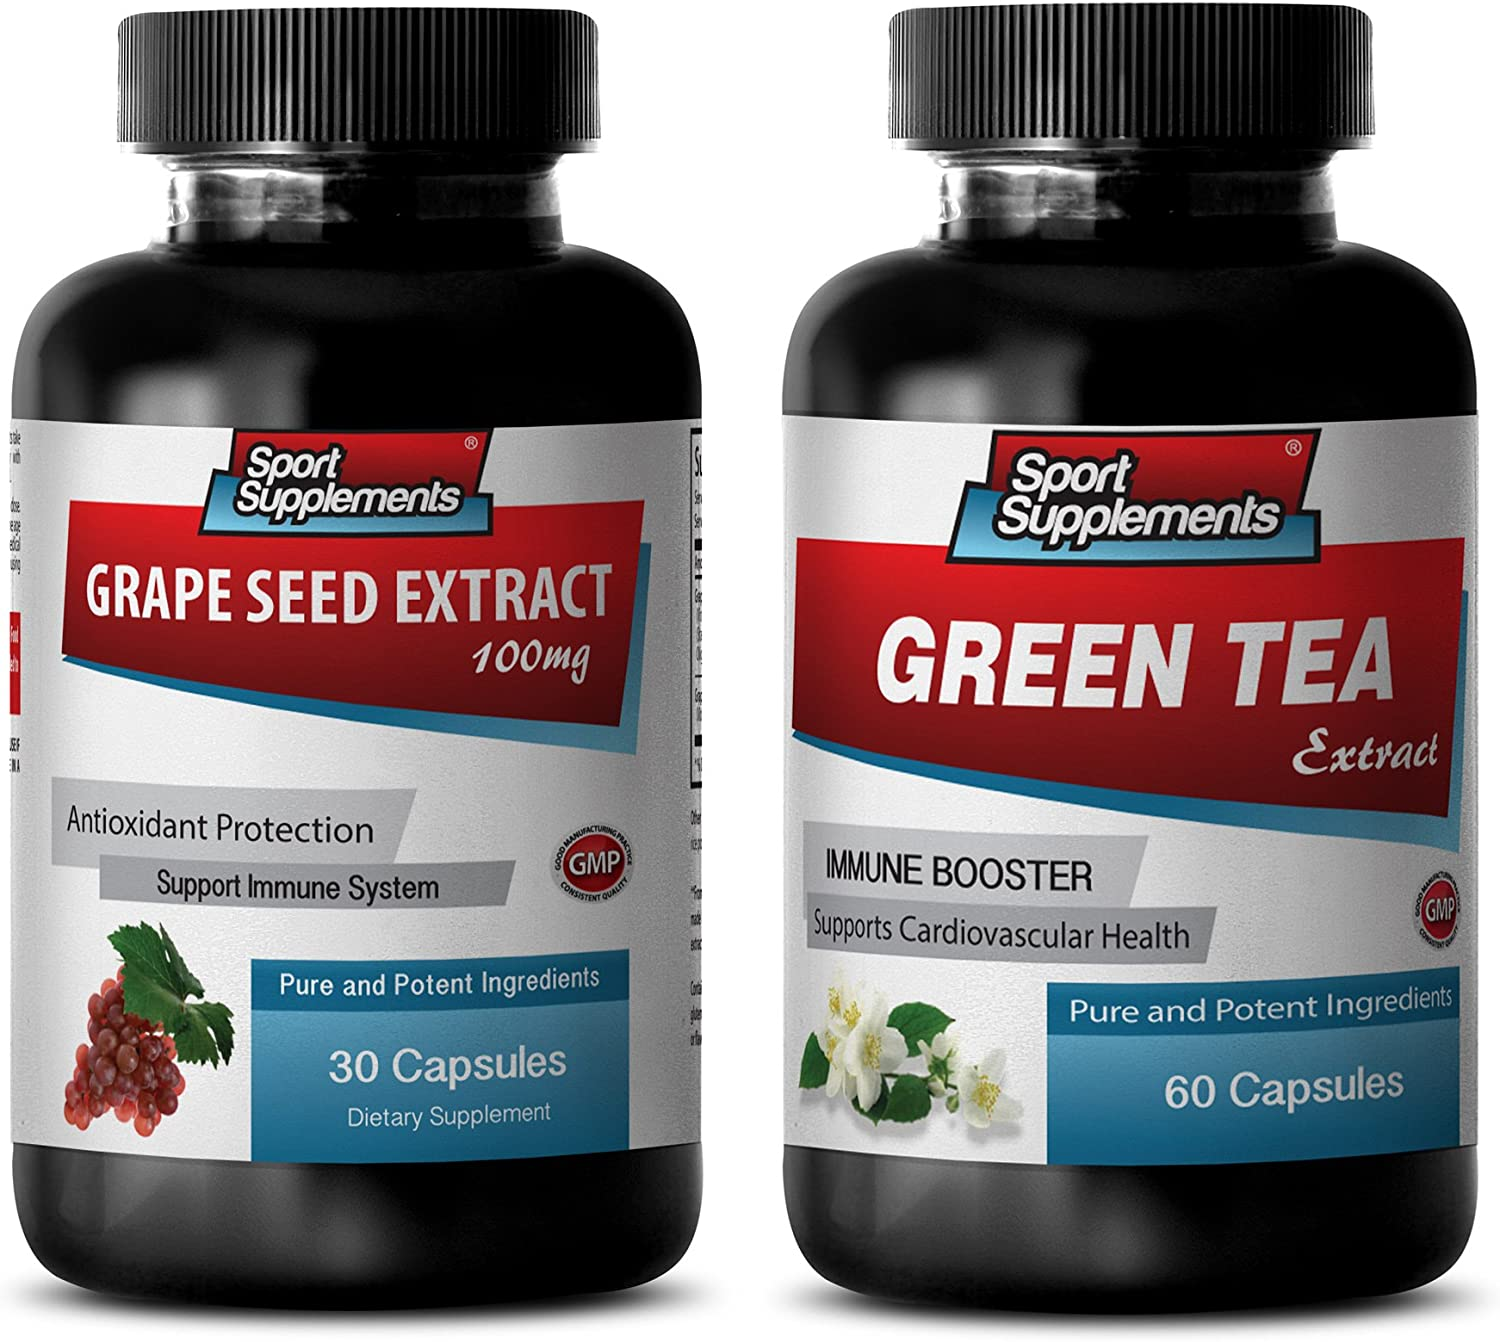 Weight Loss Complex - Grape Extract 40% OFF Cheap Sale Seed Credence Green See Tea